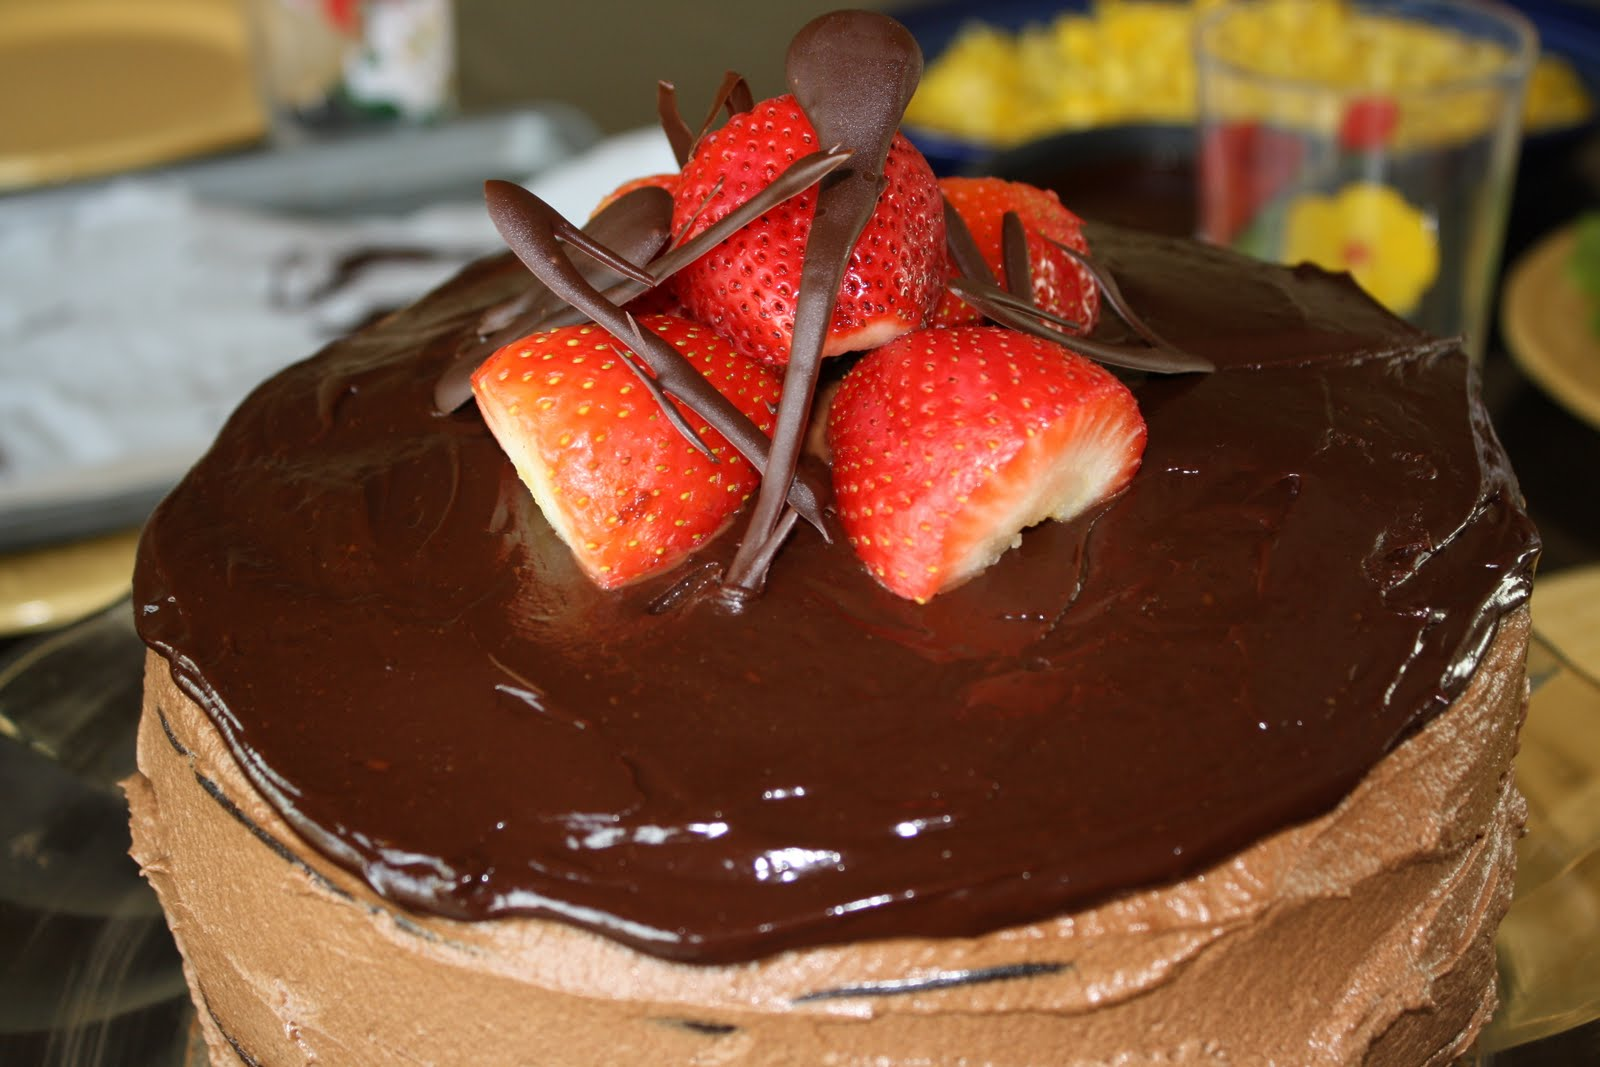 dubs cafe: Chocolate Strawberry Celebration Cake